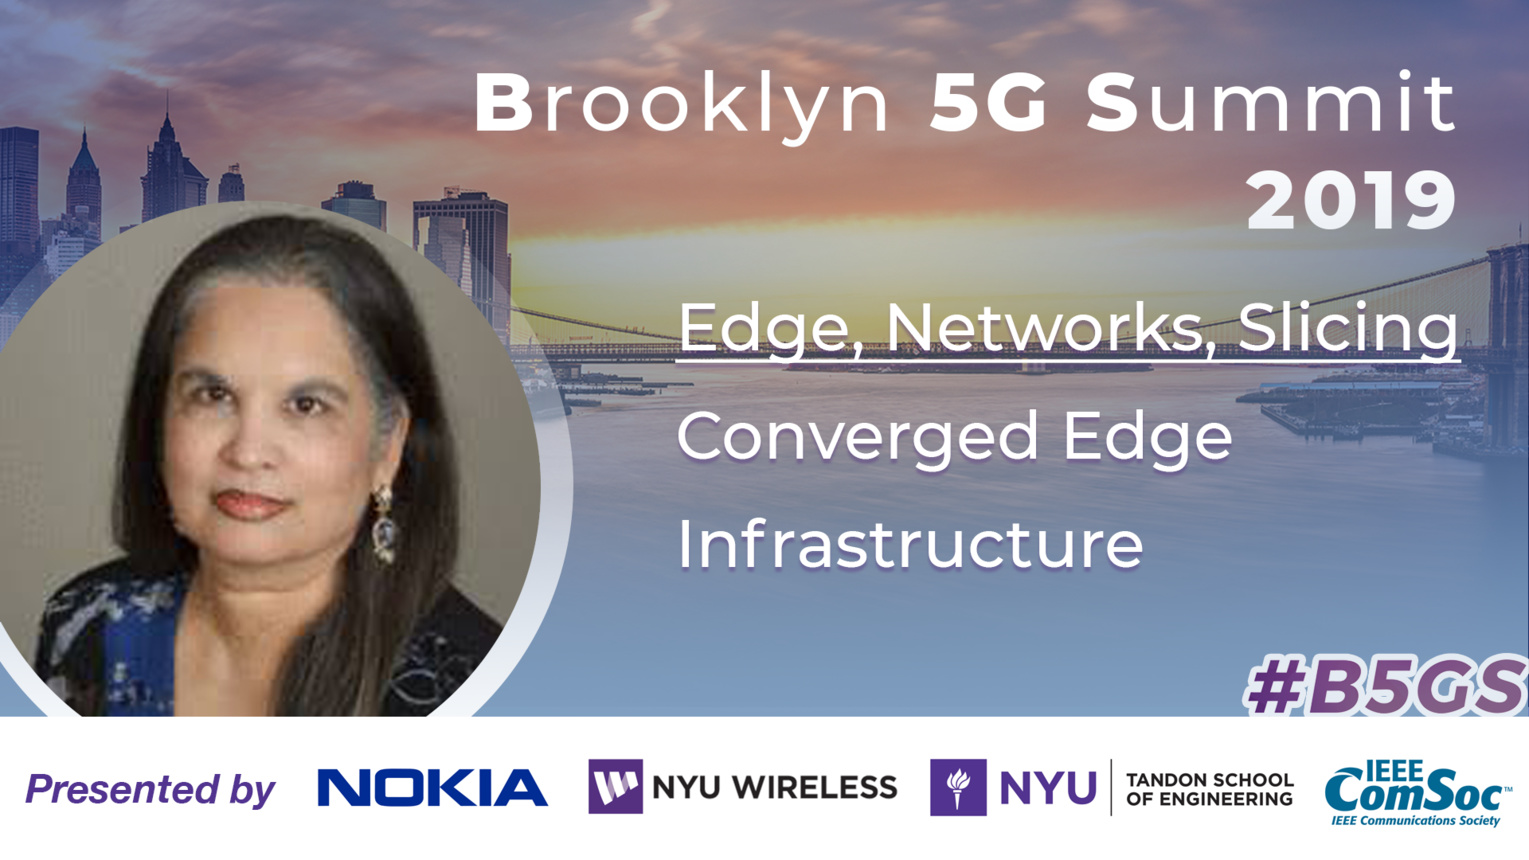 Converged Edge Infrastructure: Edge, Networks & Slicing - Geetha Ram - B5GS 2019